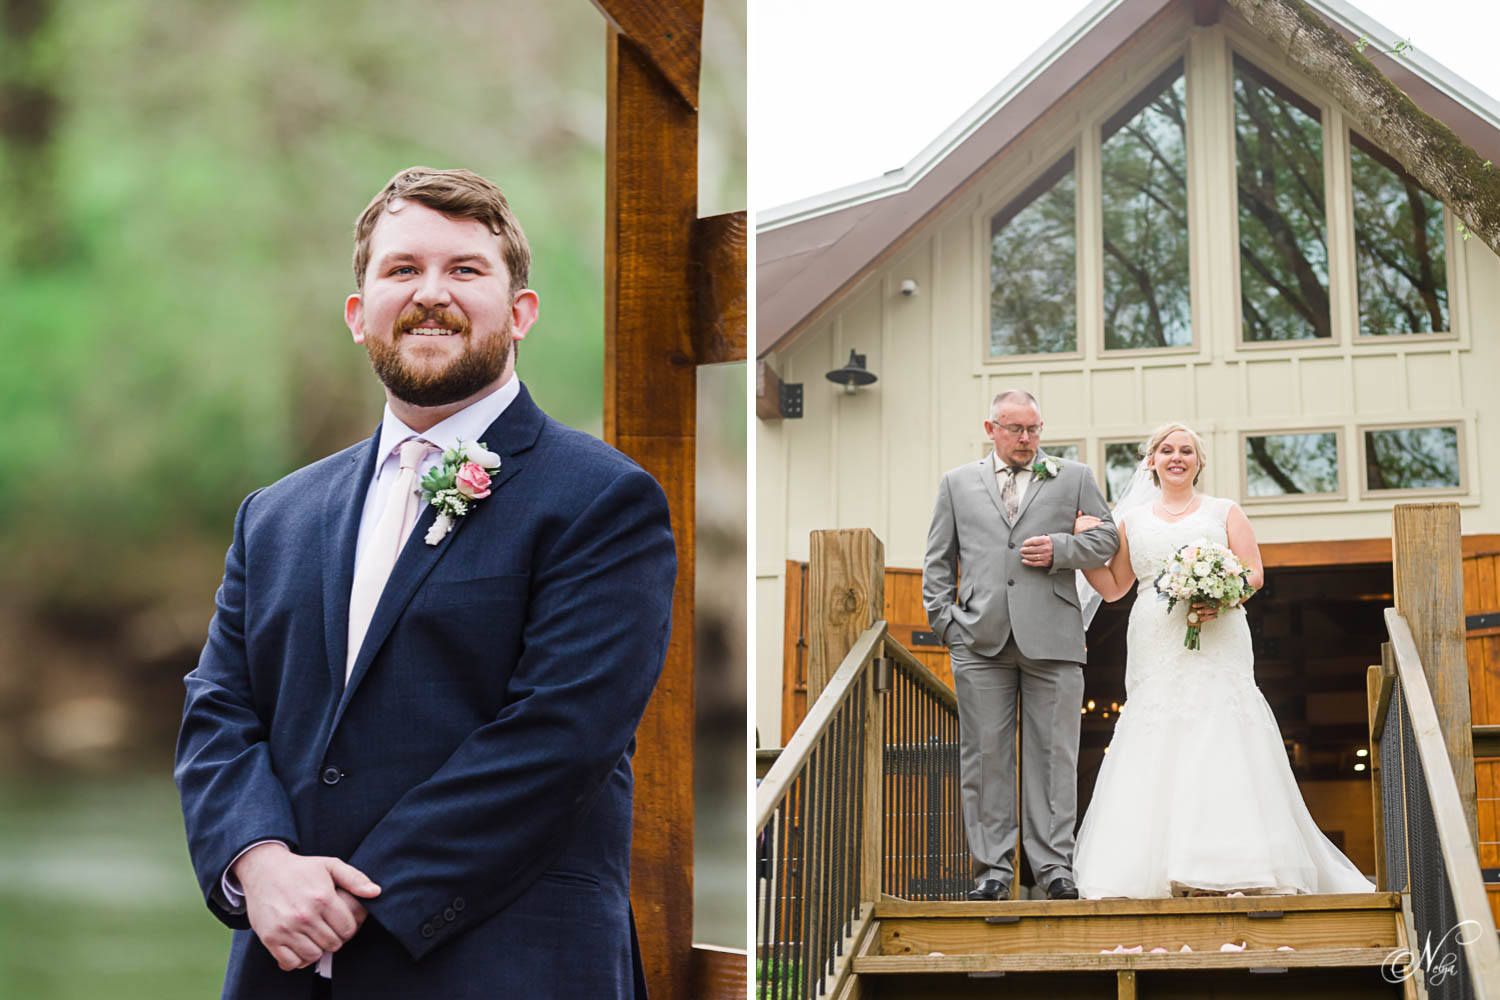 groom seeing his bride walk out the big wooden doors at Hiwassee River weddings venue. And Dad walking his daughter down the big wooden steps to the wedding with everyone watching